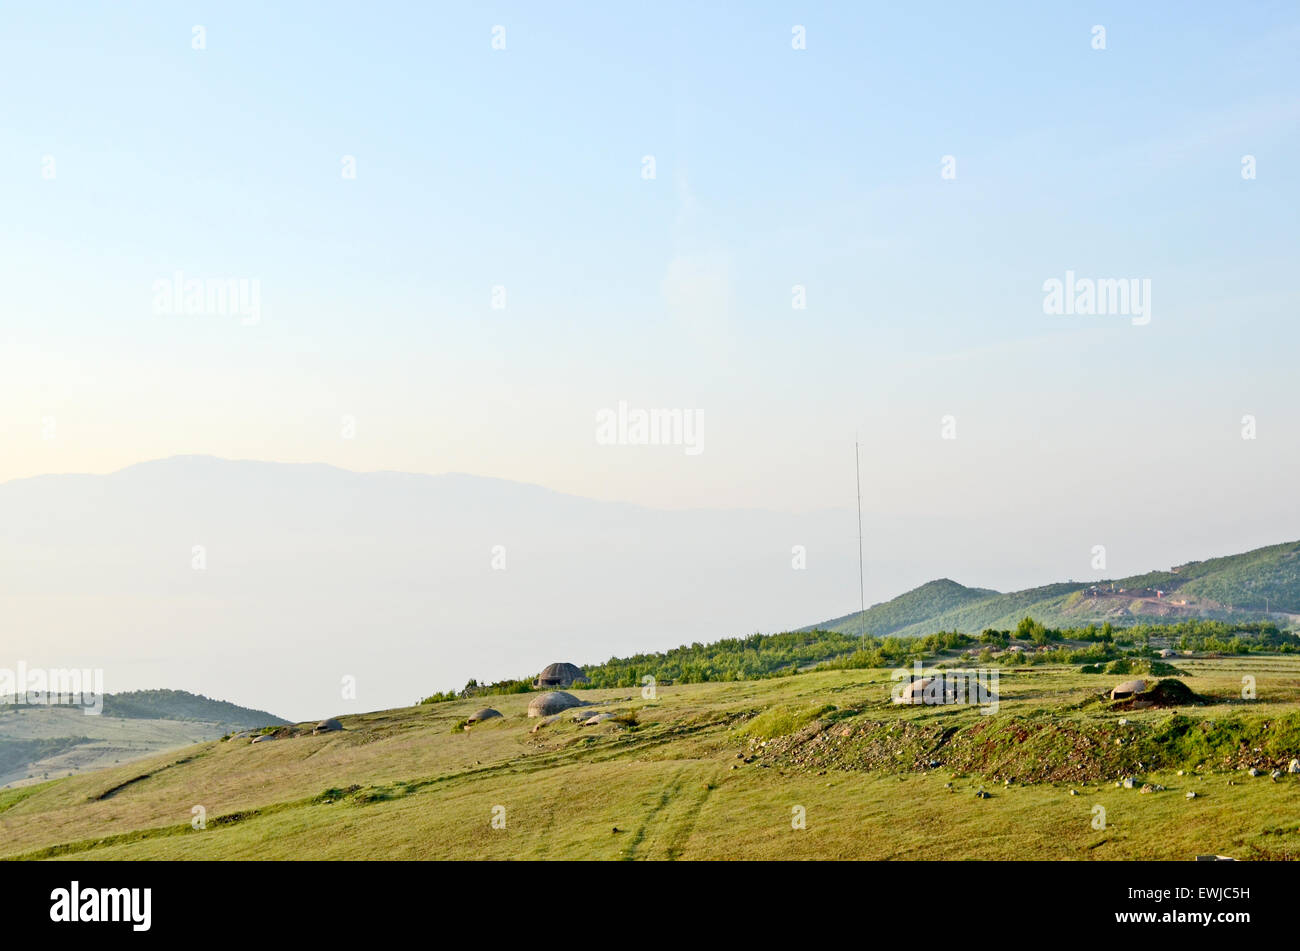 Bunkers near the border of Macedonia, in Albania, on May 25th, 2009. - Stock Image